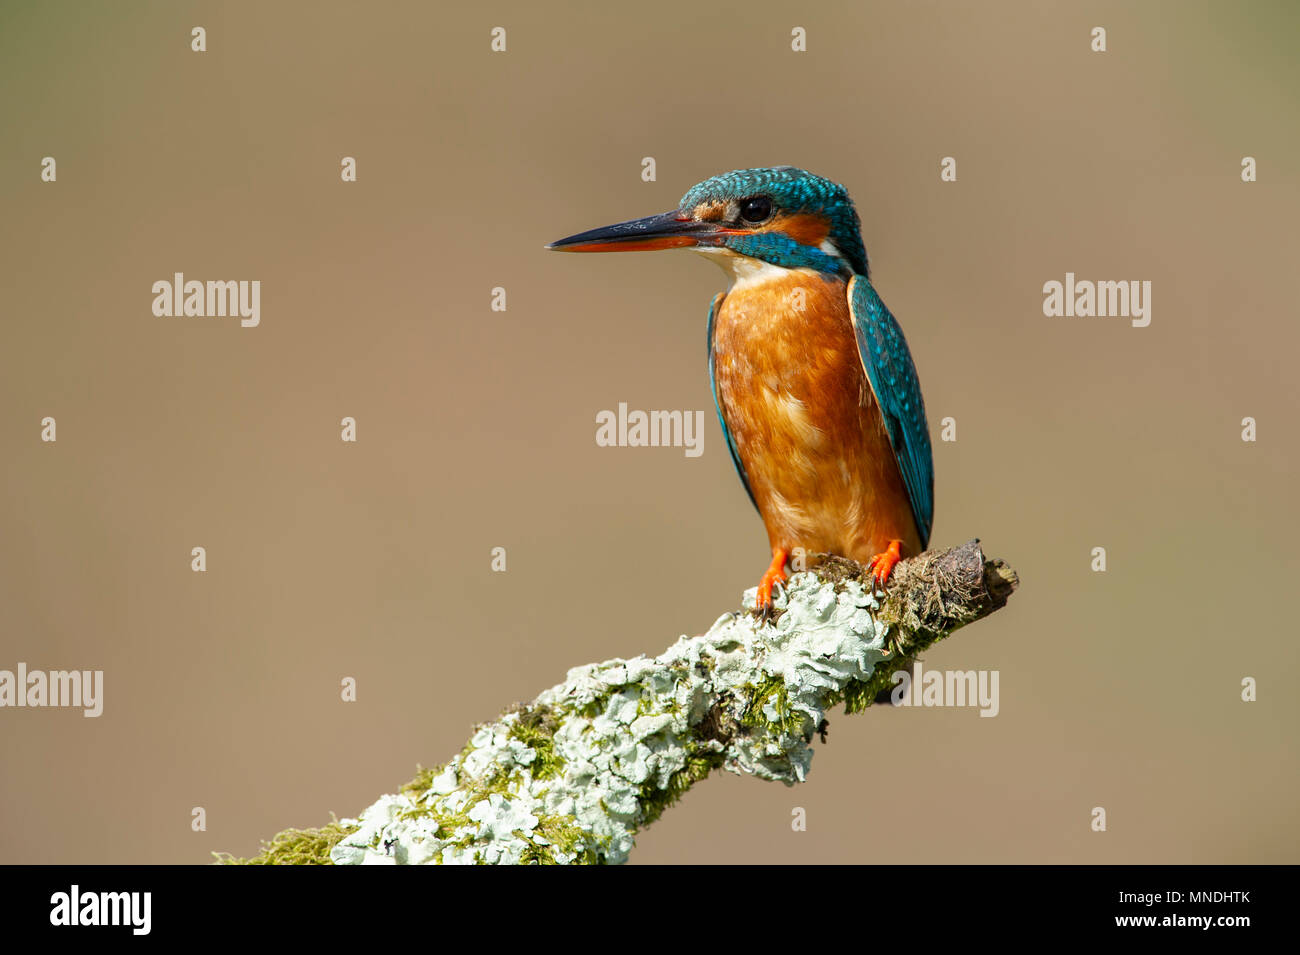 A Female Kingfisher (Alcedo atthis) perched on a branch over a river in the UK - Stock Image